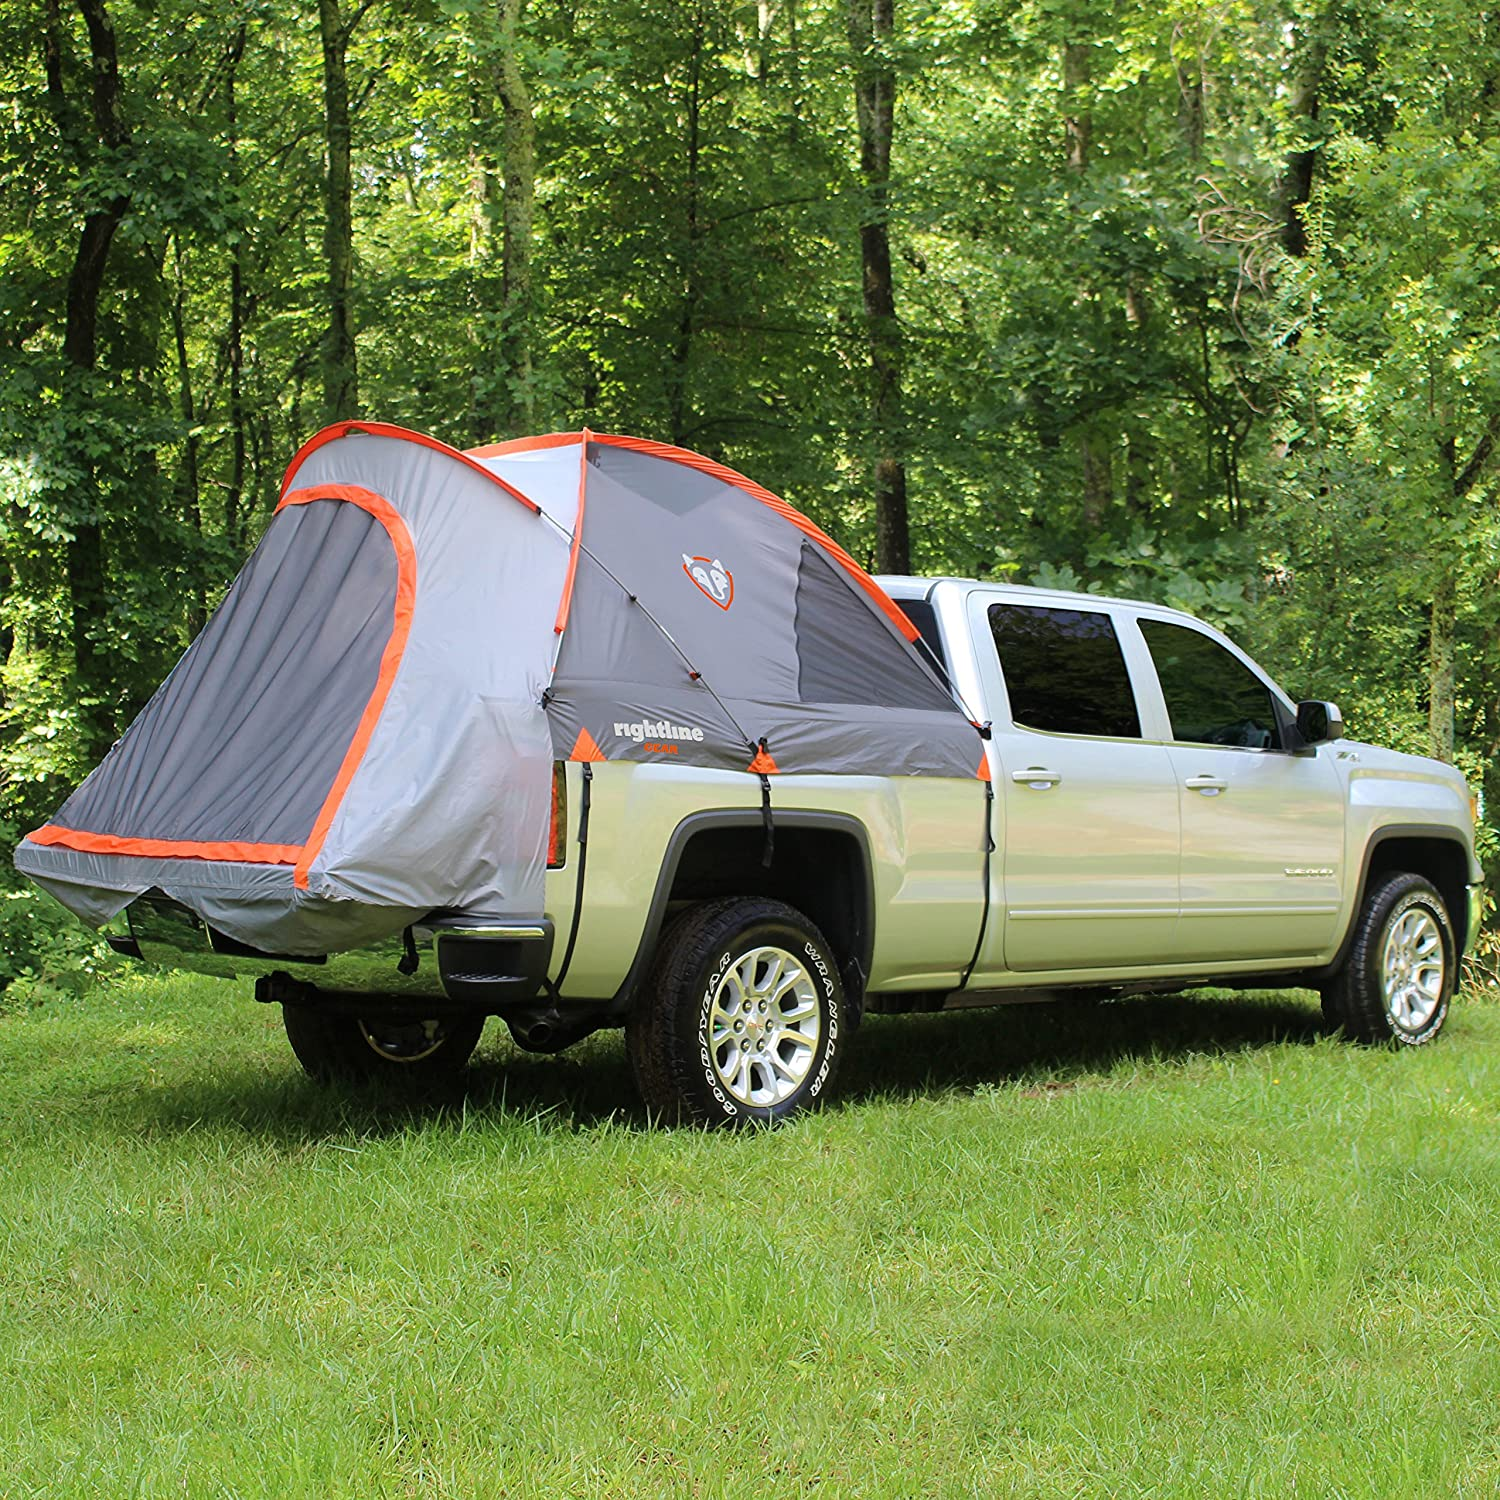 Truck tent campers - Truck camping setups: Truck Tent Campers, Roof top tents, campers, and canopies